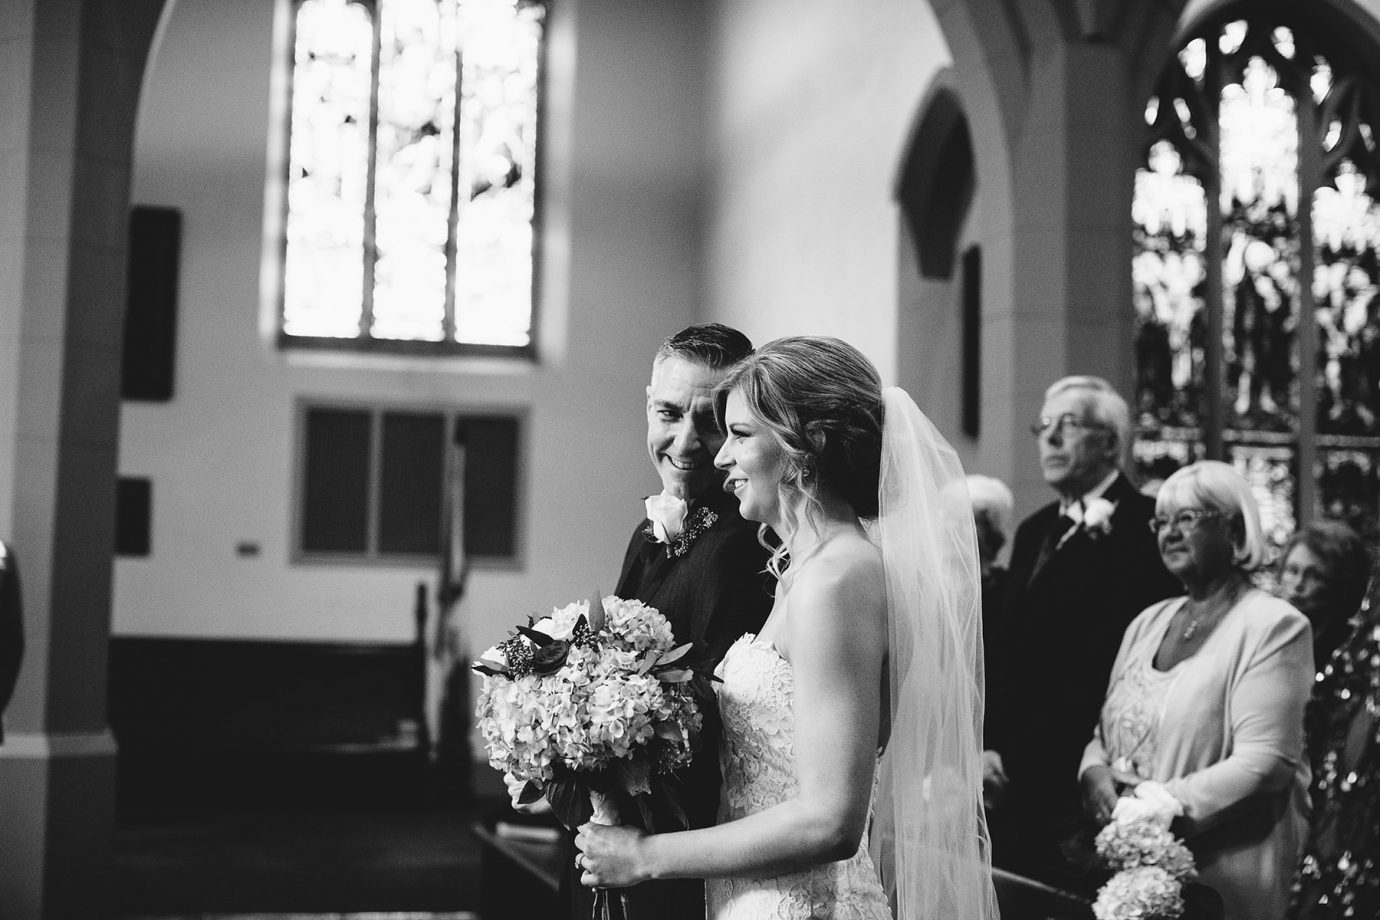 Winnipeg-Wedding-Photographer-45